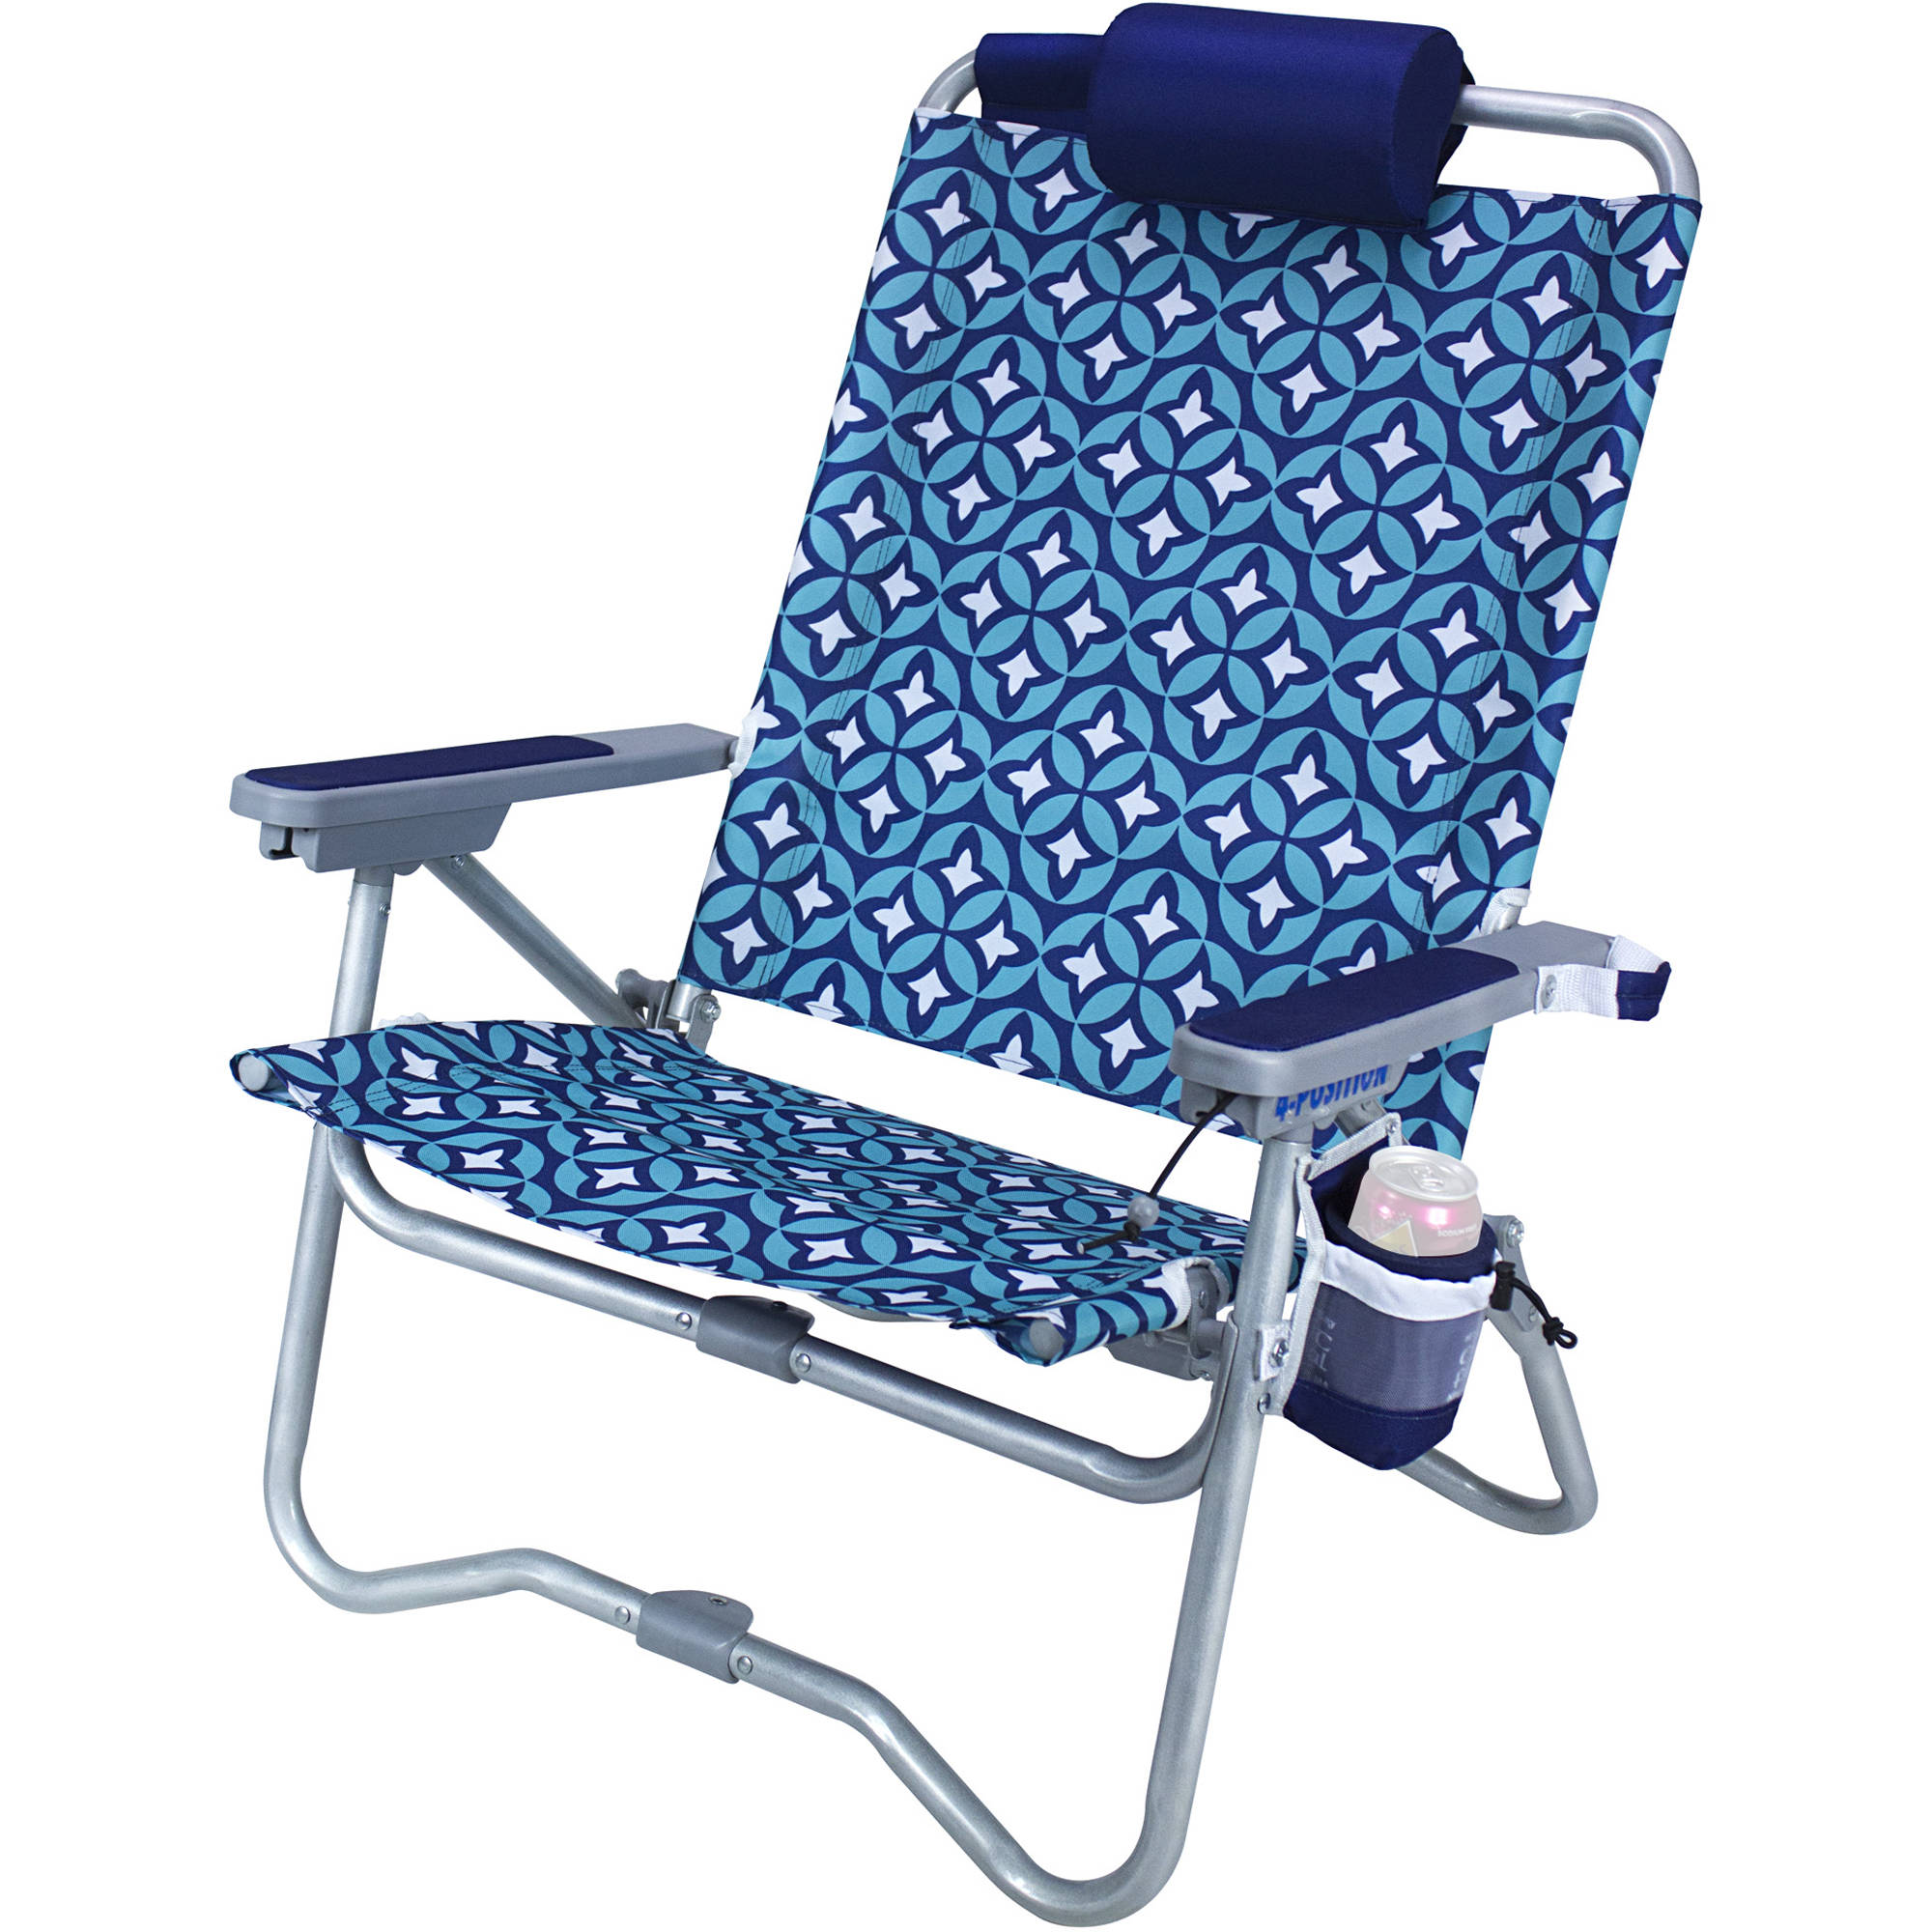 GCI Outdoor Bi Fold Beach Chair B&H Video